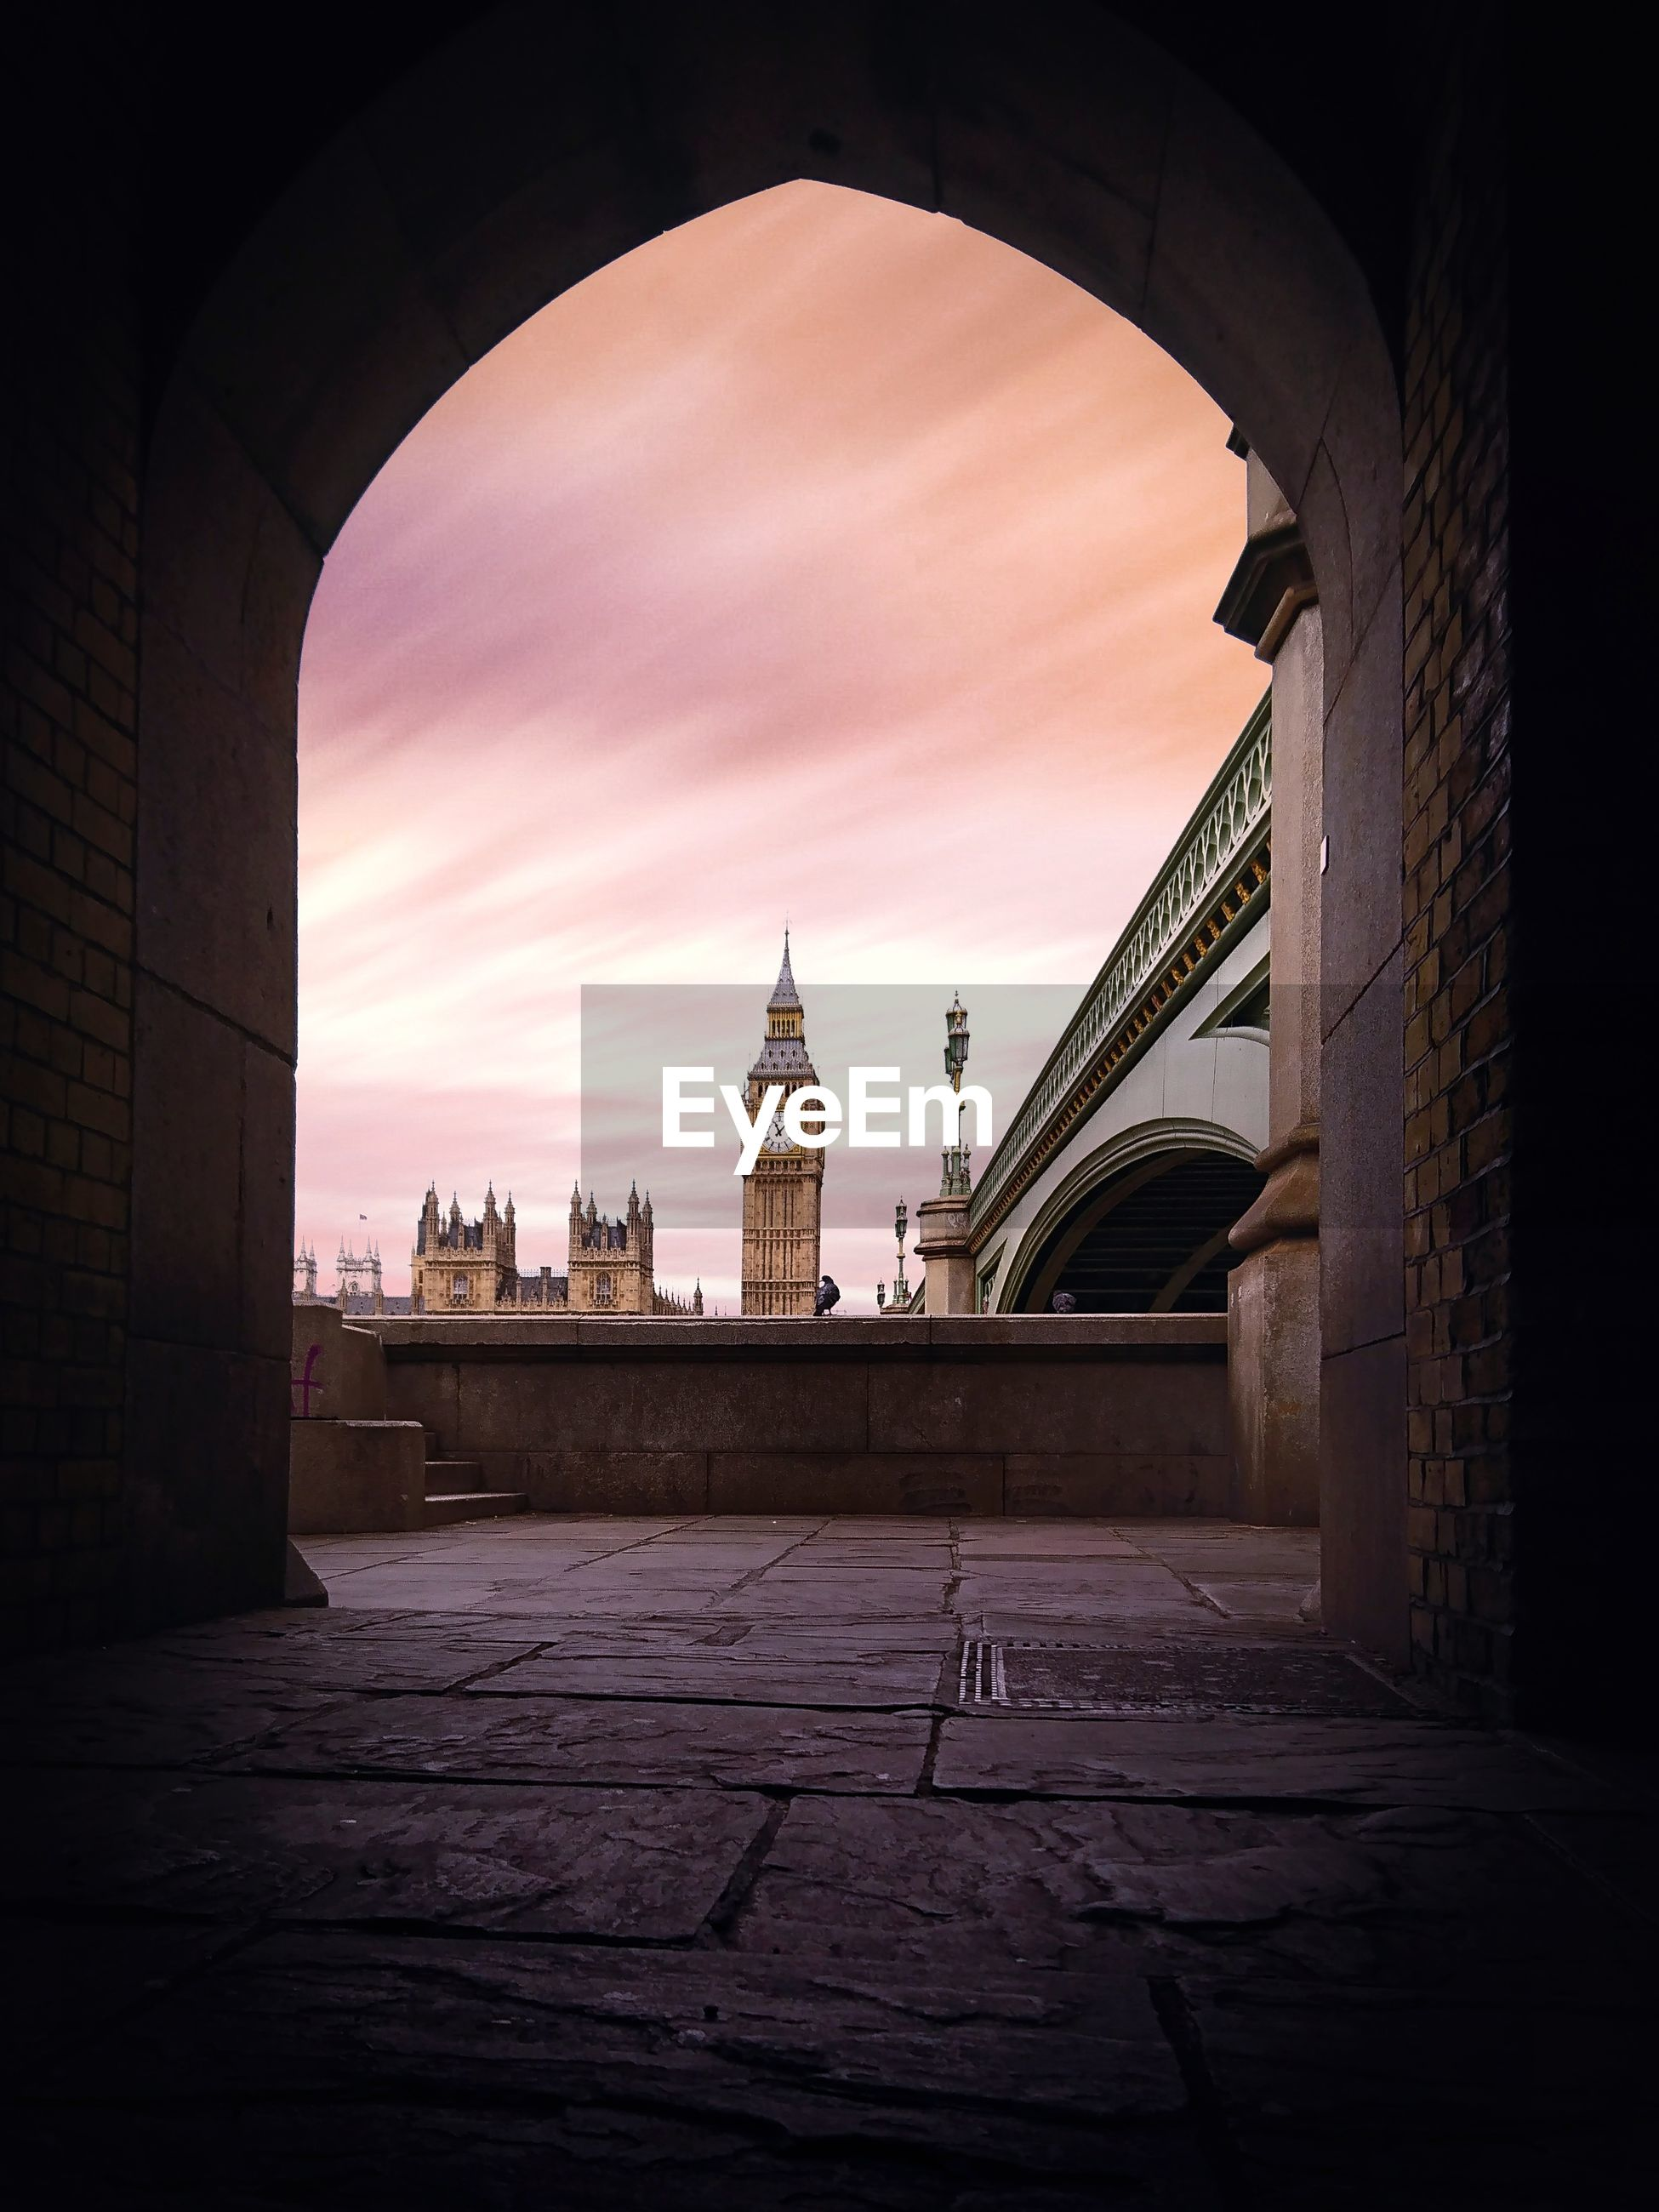 Big ben seen through arch against sky in city during sunset